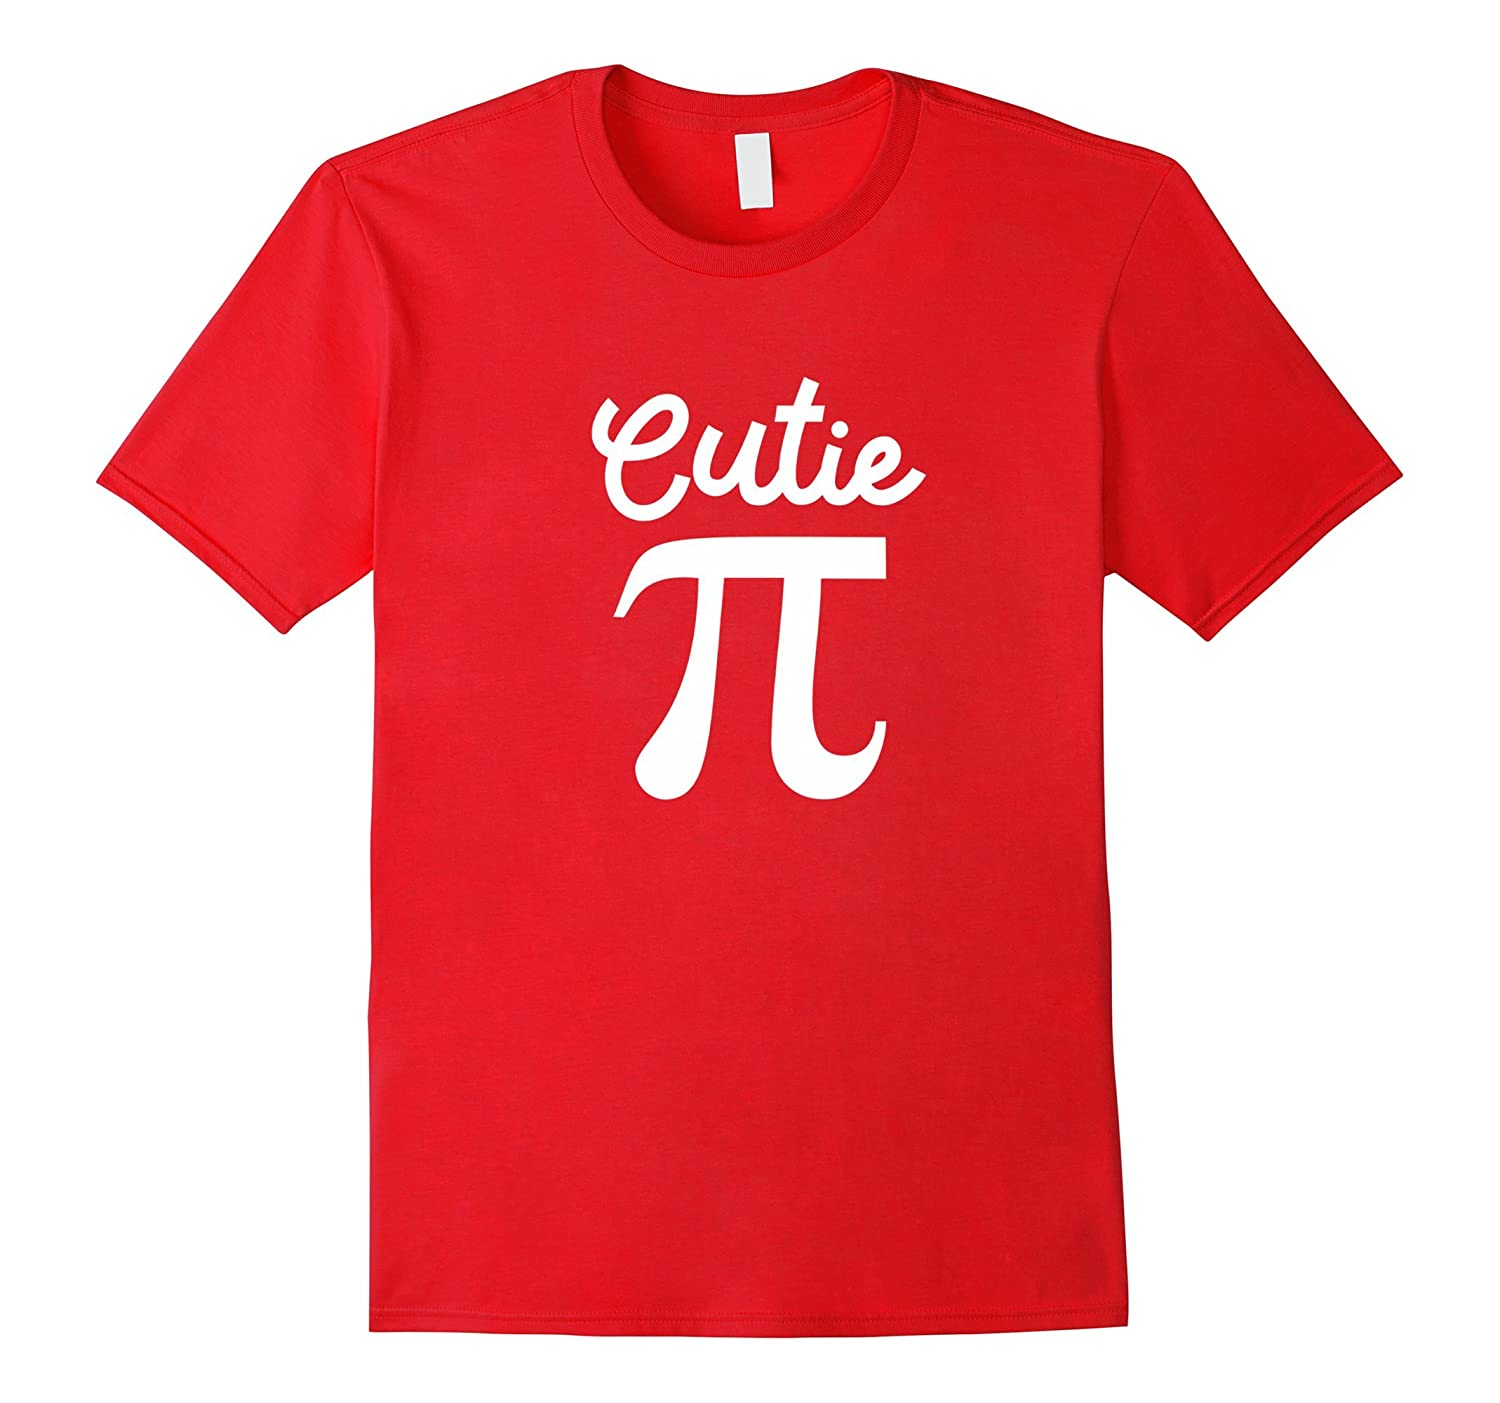 Cutie Pi Symbol (Pie) T-Shirt - Cute Funny Math Geek Tee-CL